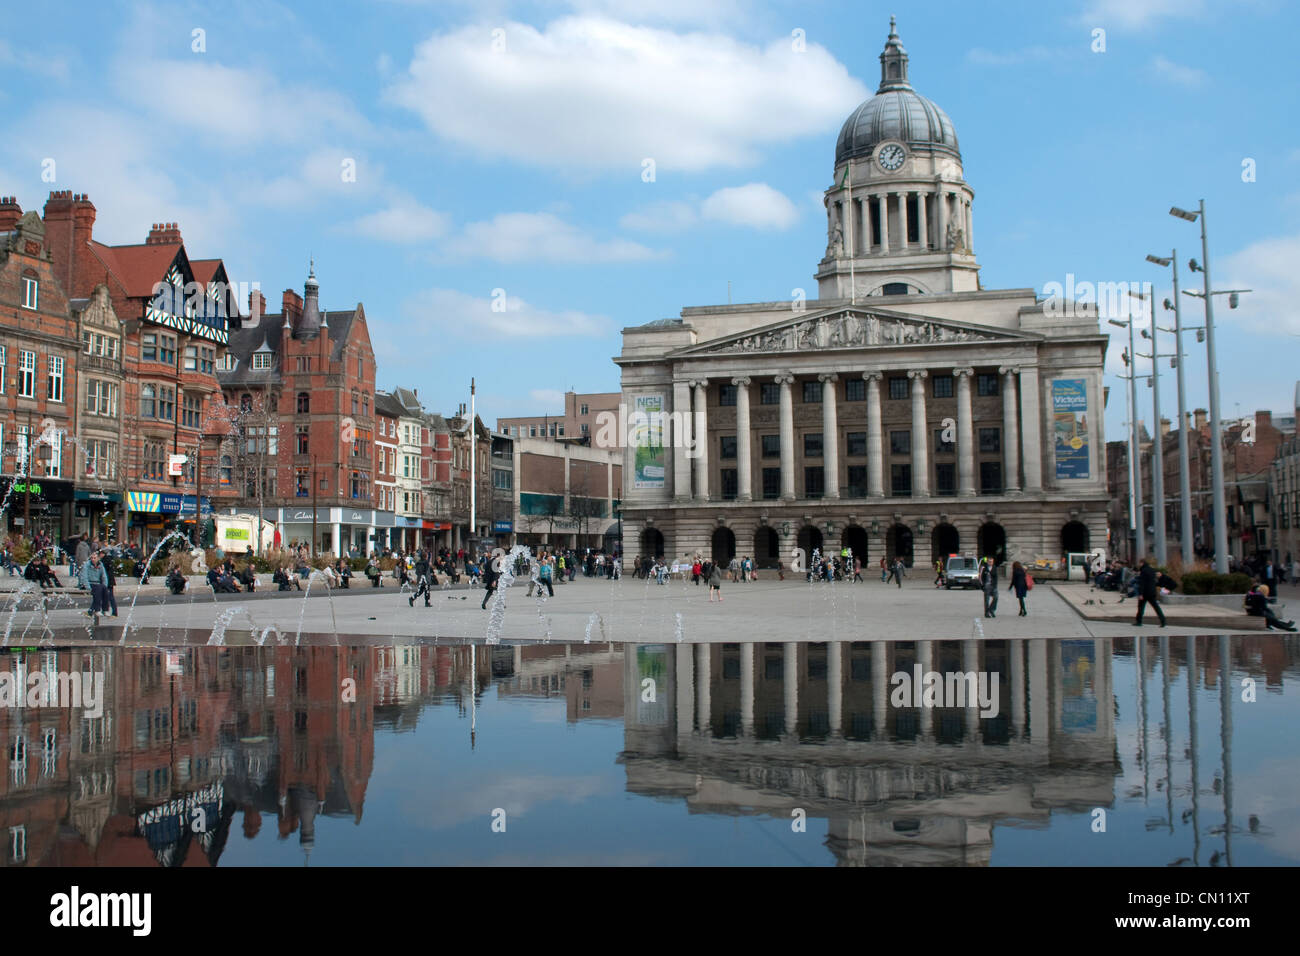 The Old Market Square in Nottingham, England - Stock Image